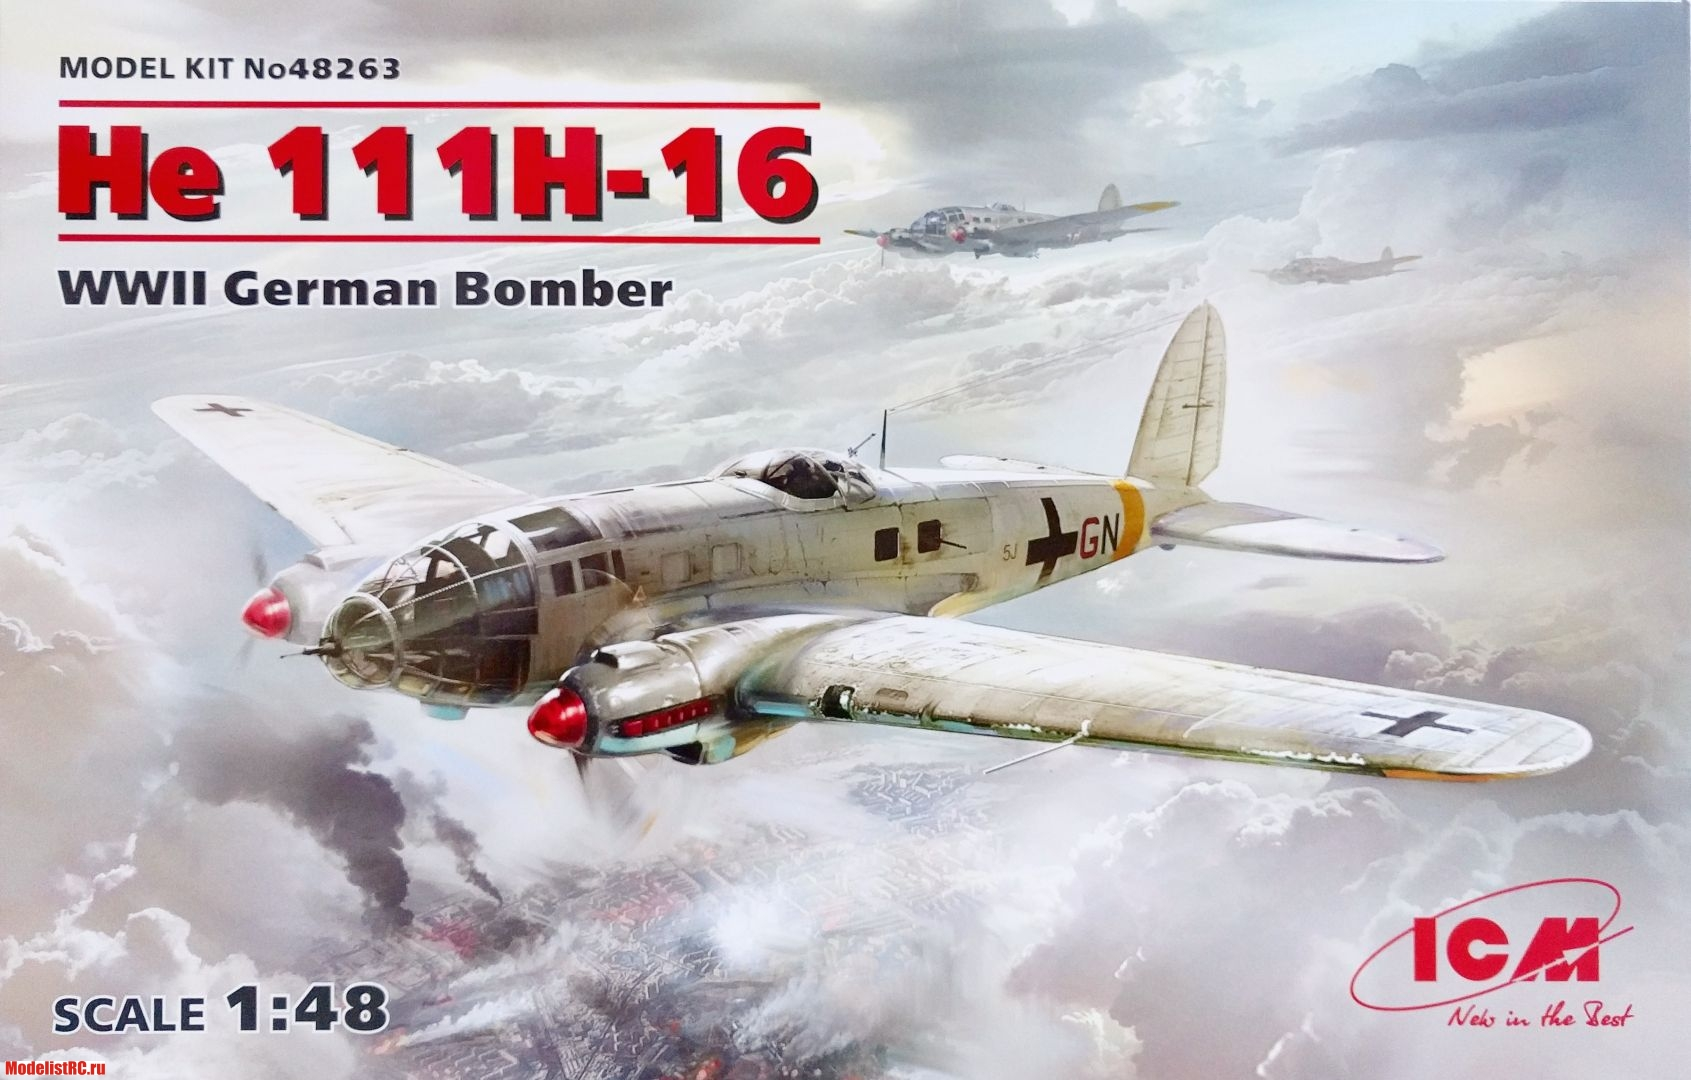 48263 ICM 1/48 He 111H-16, WWII German Bomber